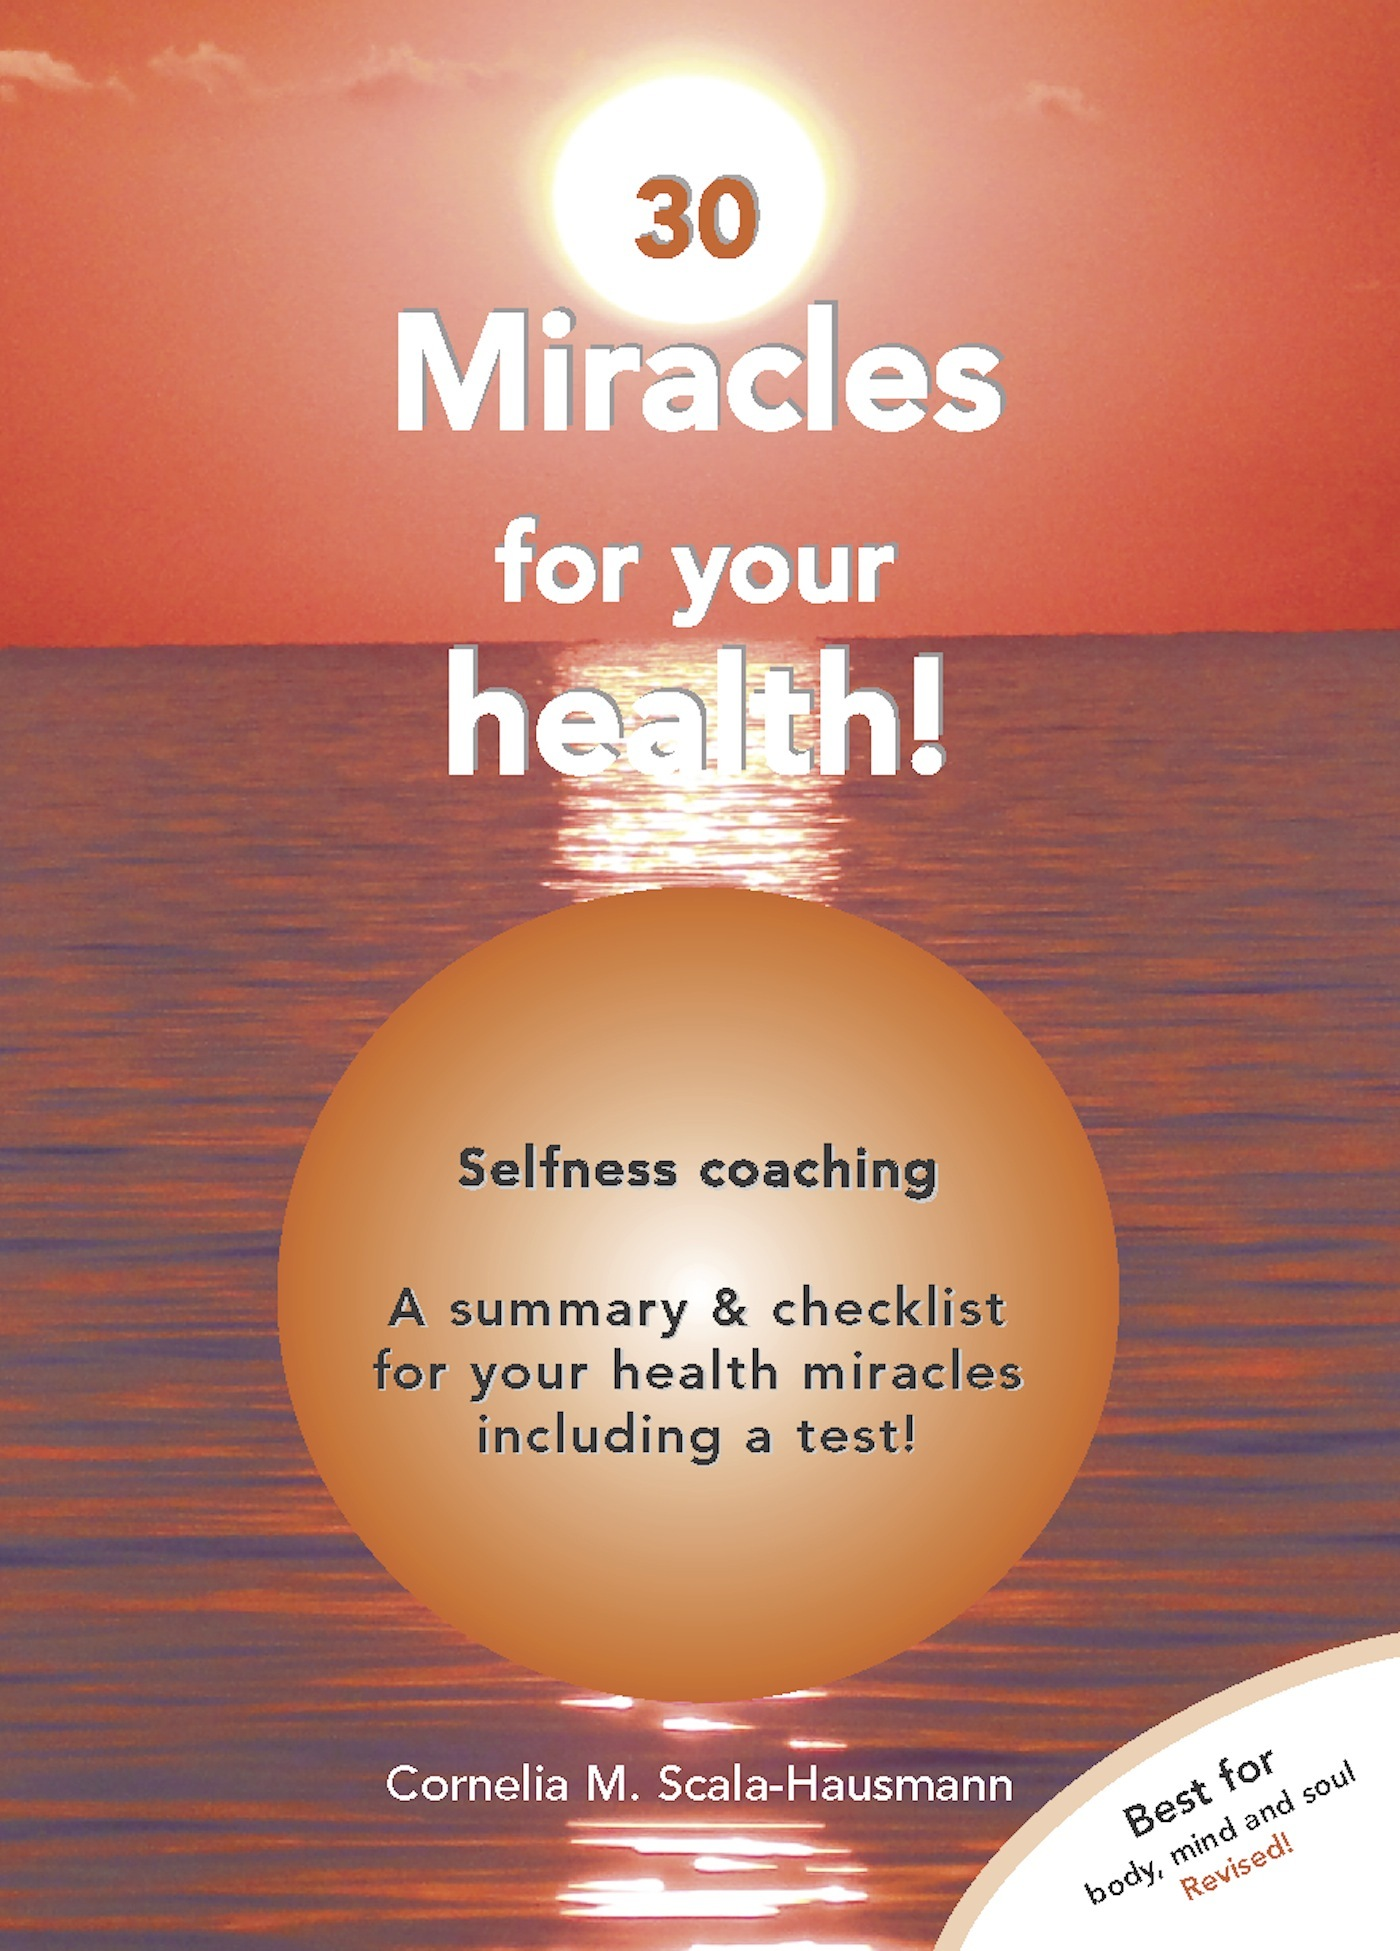 30 Miracles of Your Health: Become and Stay Healthy With Self-Competence  by  Cornelia Scala-Hausmann